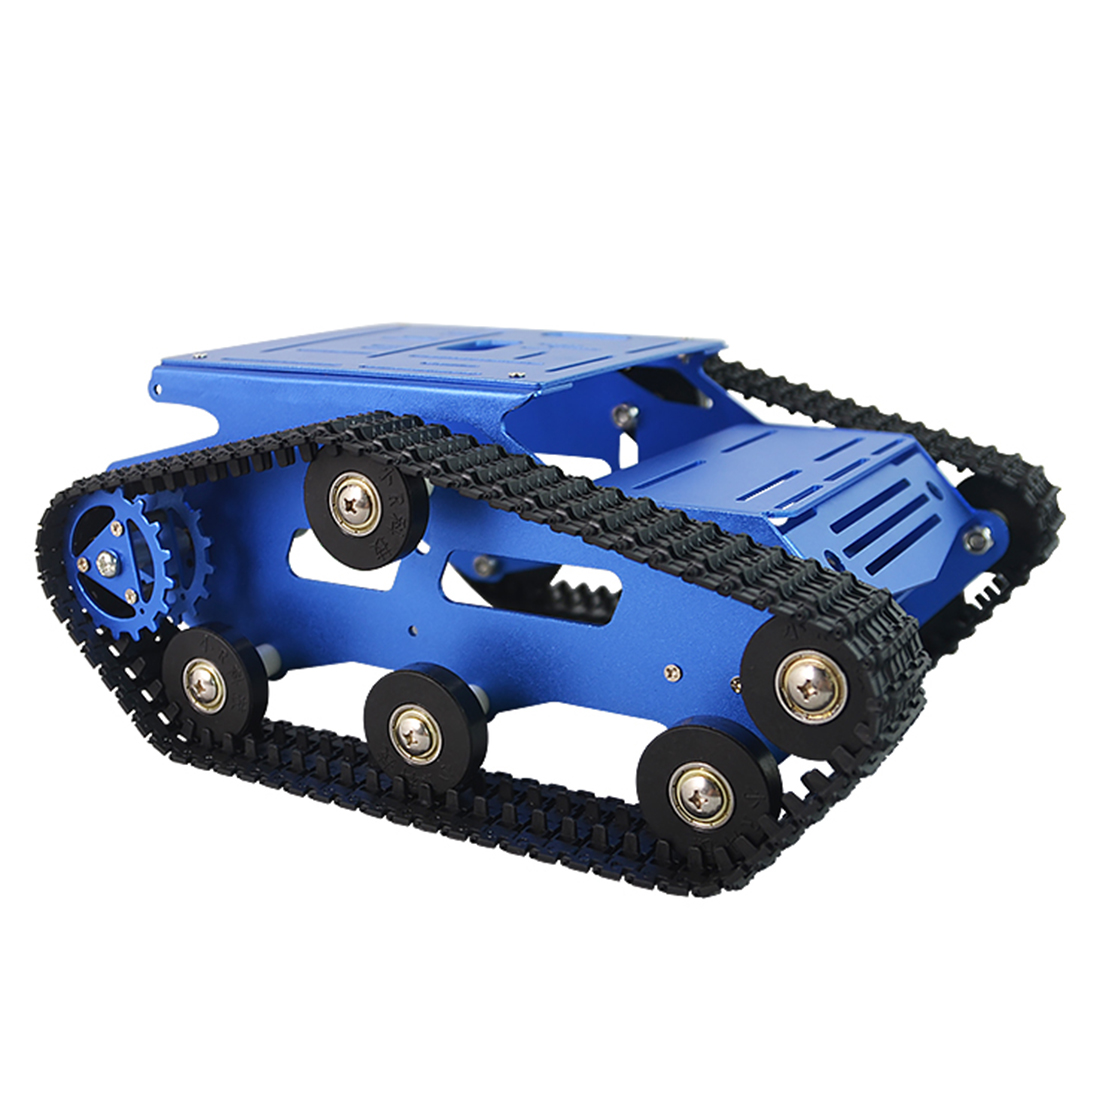 DIY Smart Robot Tank Crawler Chassis Car Frame Kit Model Educational Toy Gift For Child Kid Adult - Blue/Black/Red/Golden/Green